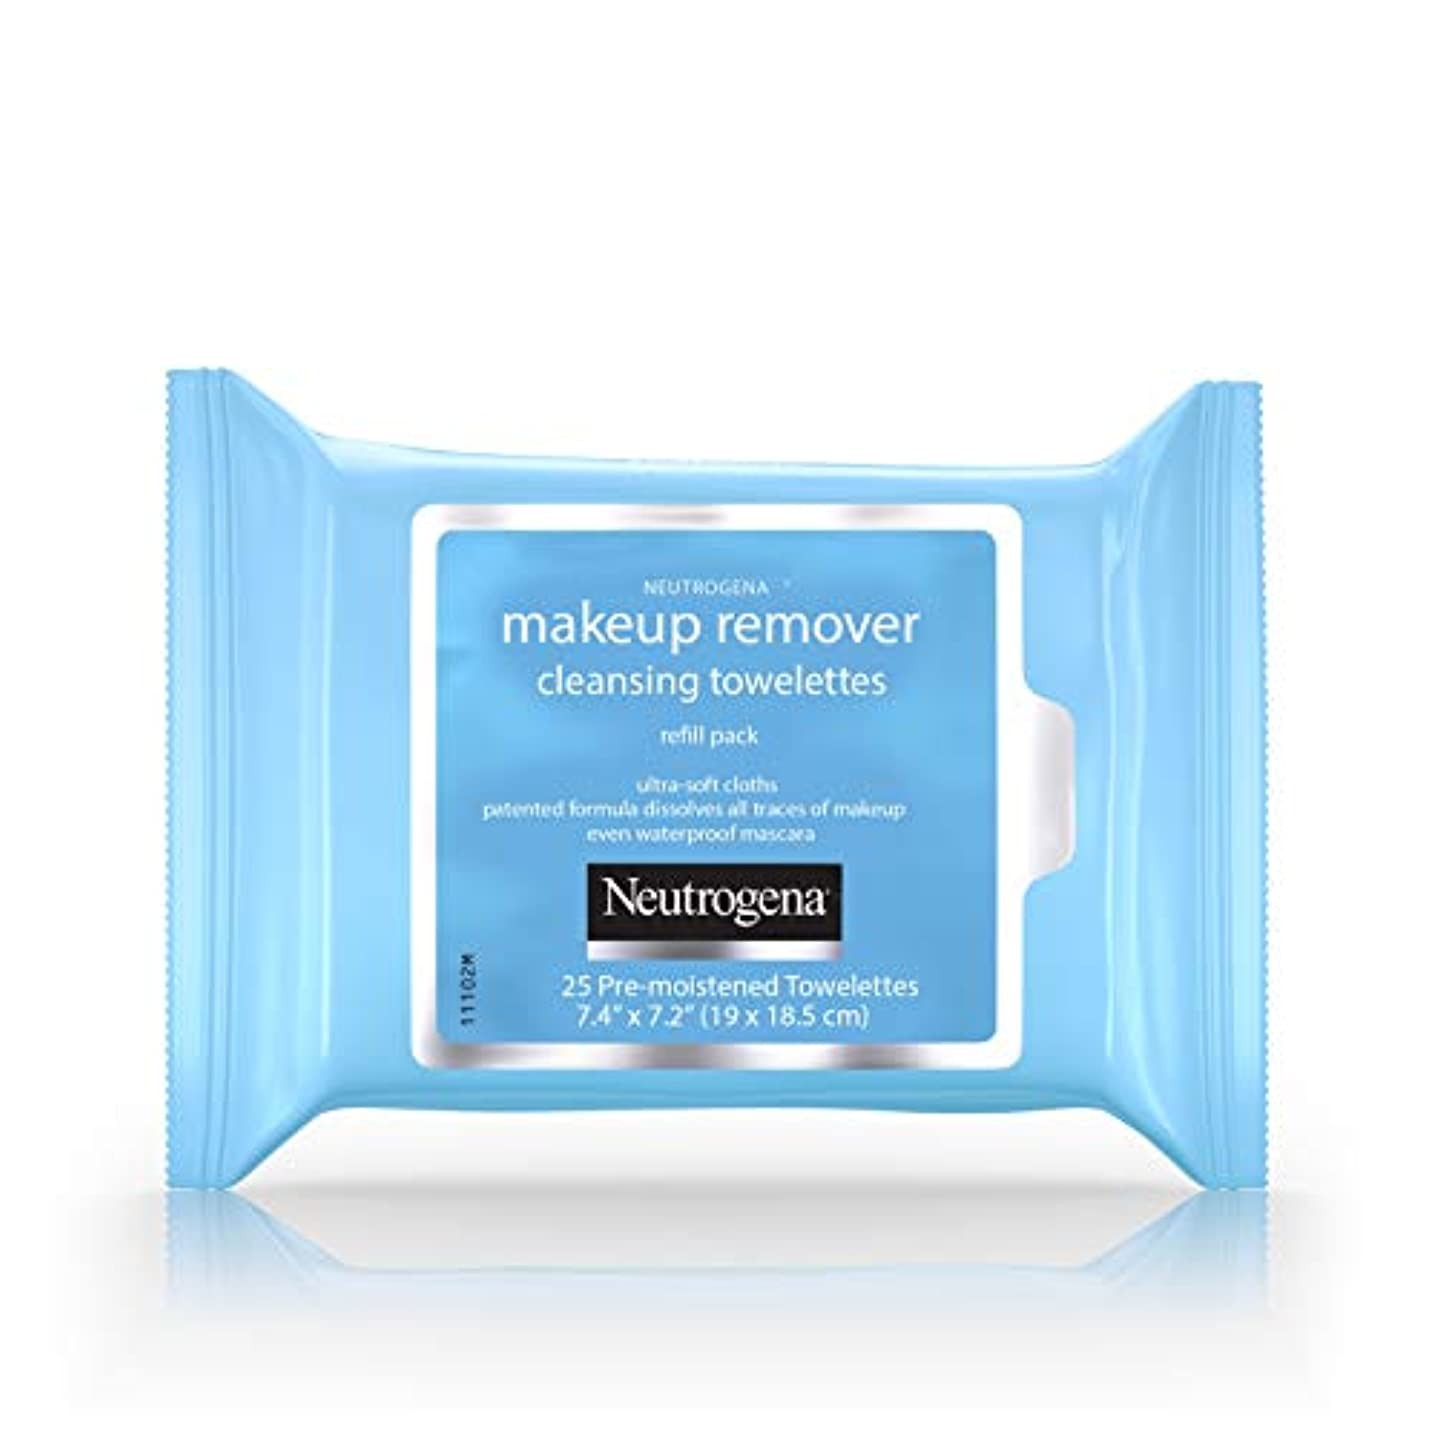 離れた土曜日カーテンNeutrogena Make-up Remover Cleansing Towelettes Refill Pack 25 Pc (並行輸入品)